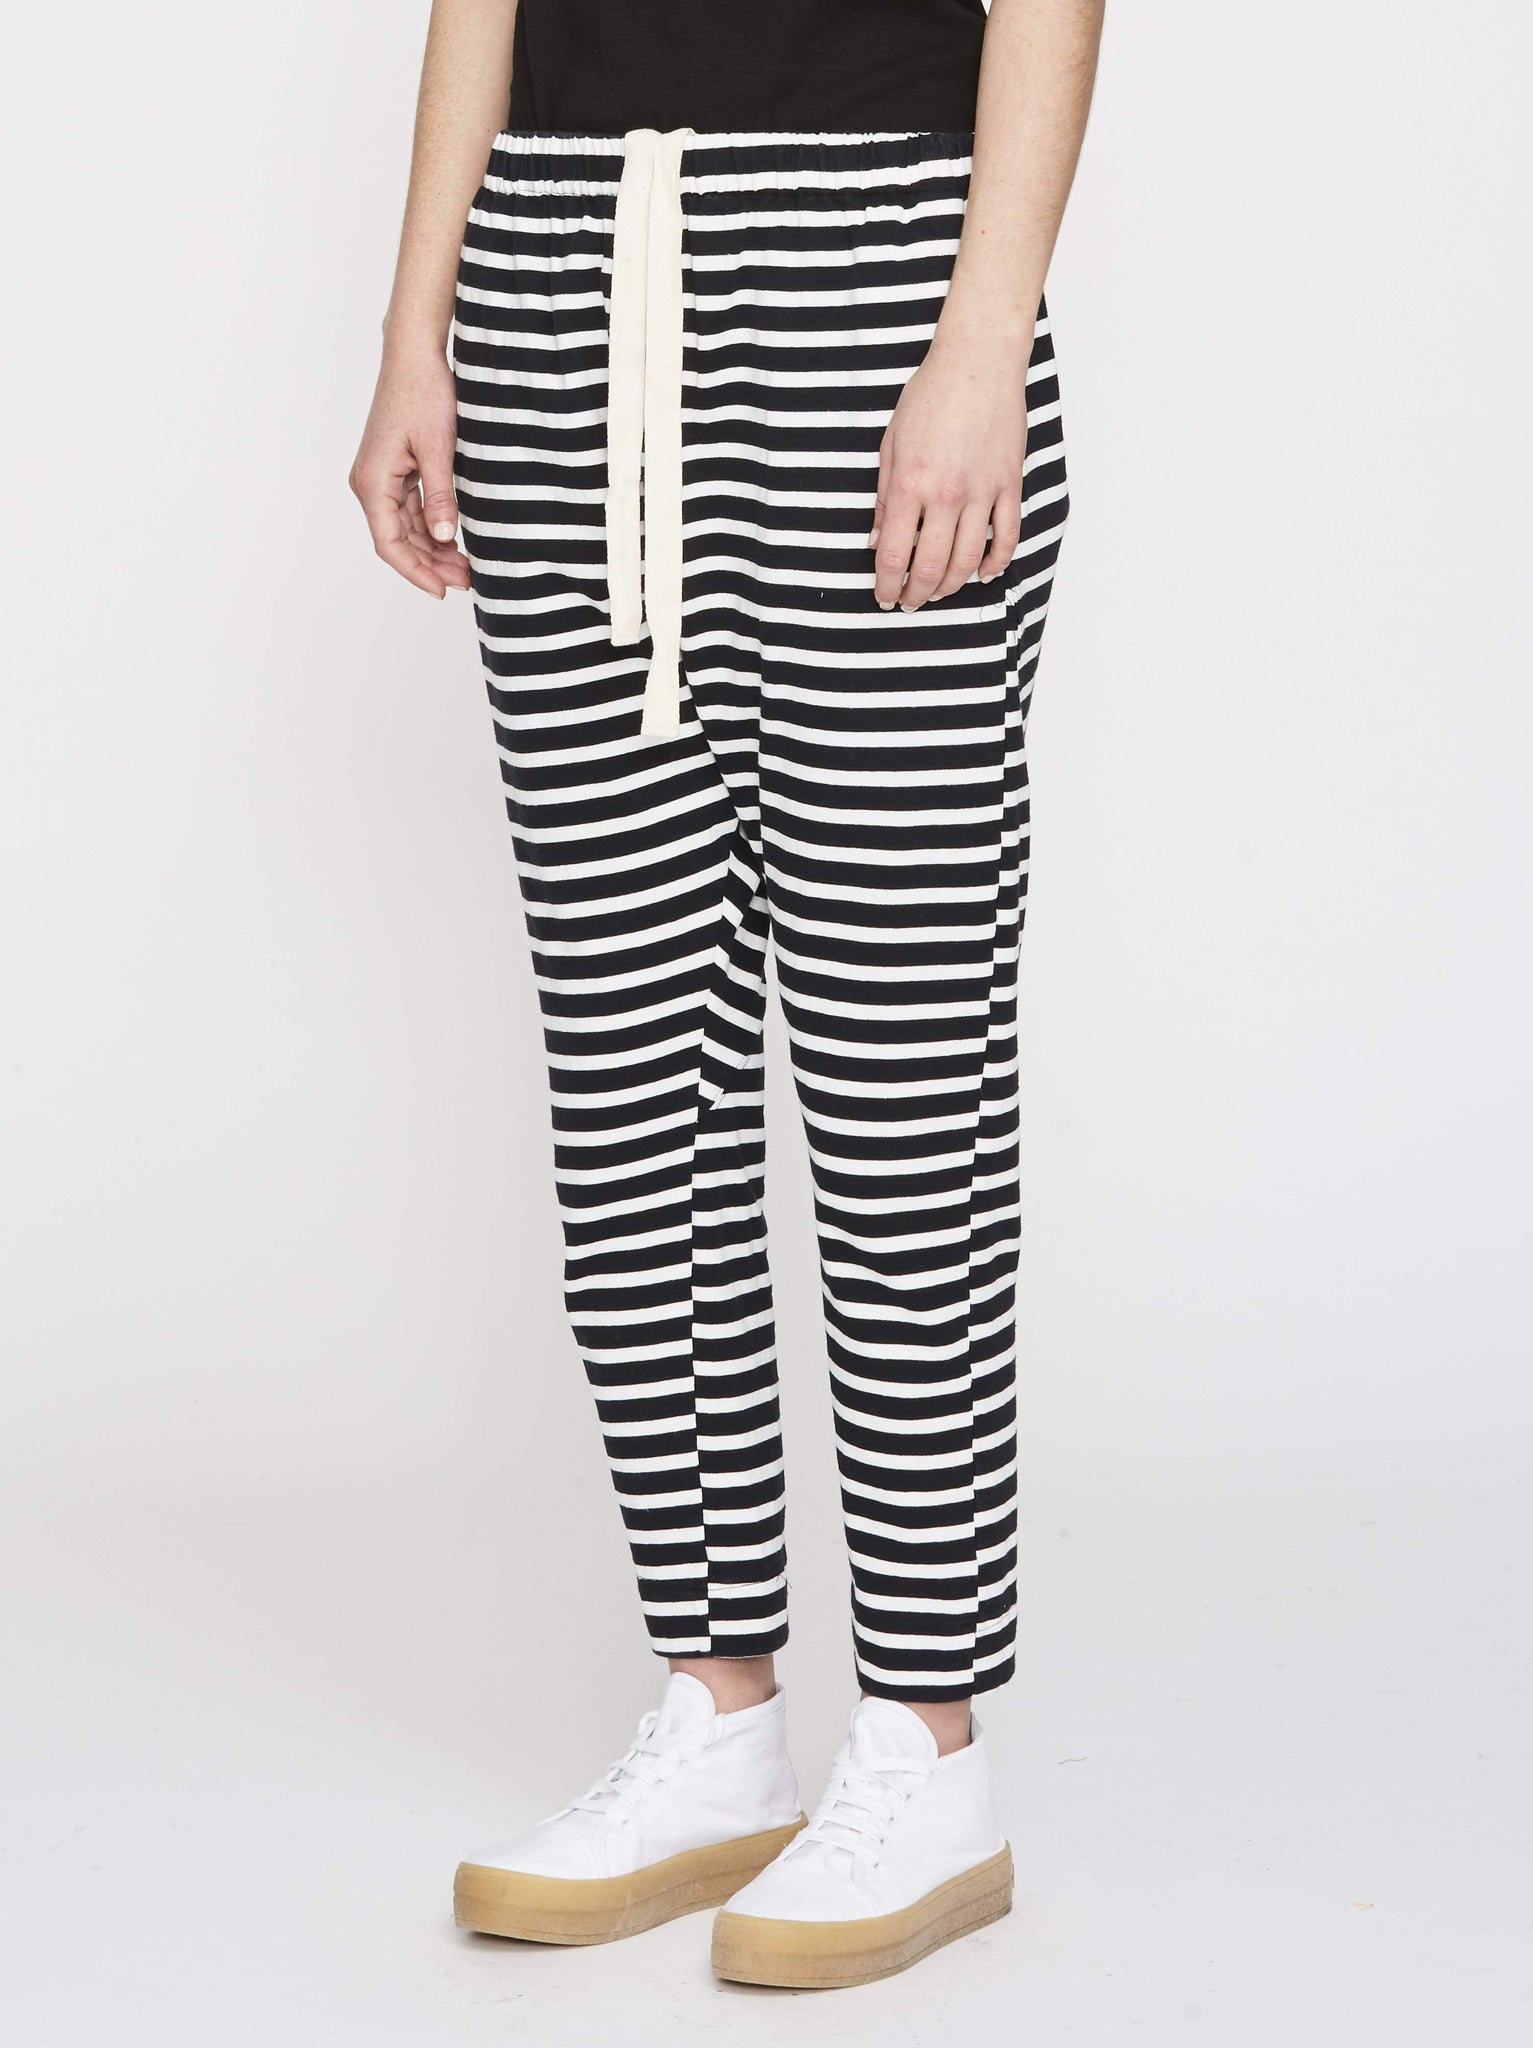 Bassike Womens Pants BLK/WHT / XS Bassike | Striped Rugby Panelled Pant - Black/White